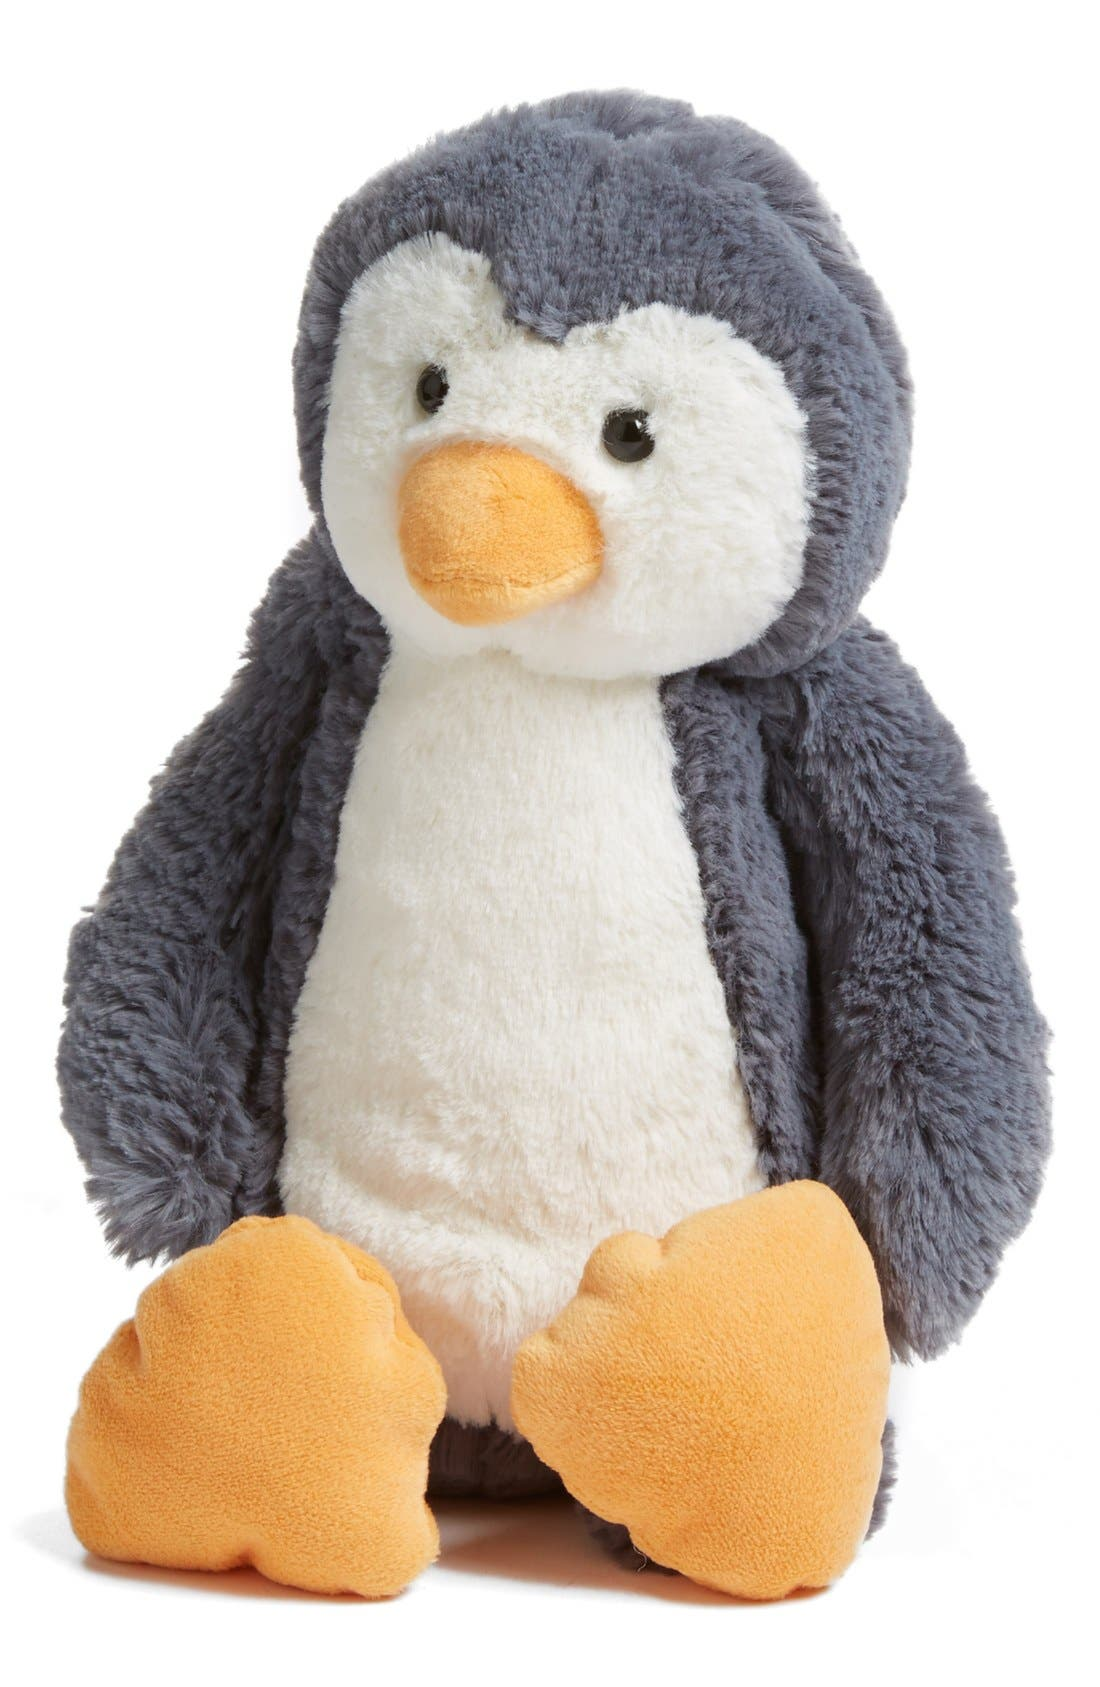 Main Image - Jellycat 'Bashful Penguin' Stuffed Animal